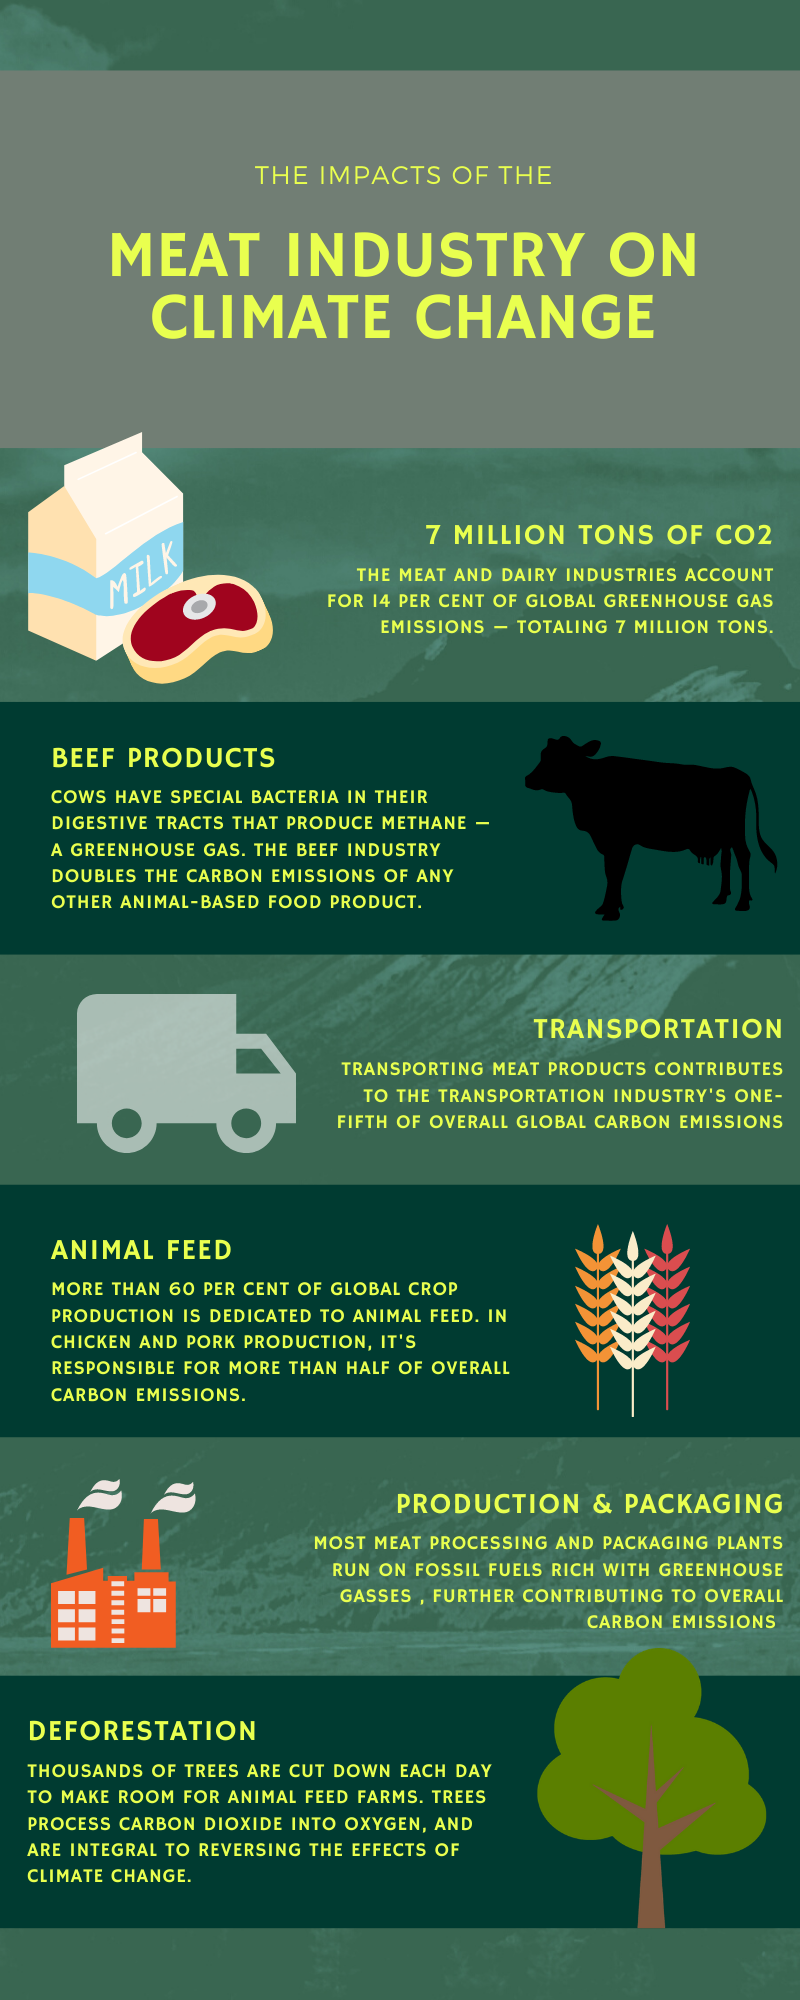 The impacts of the food industry on climate change.